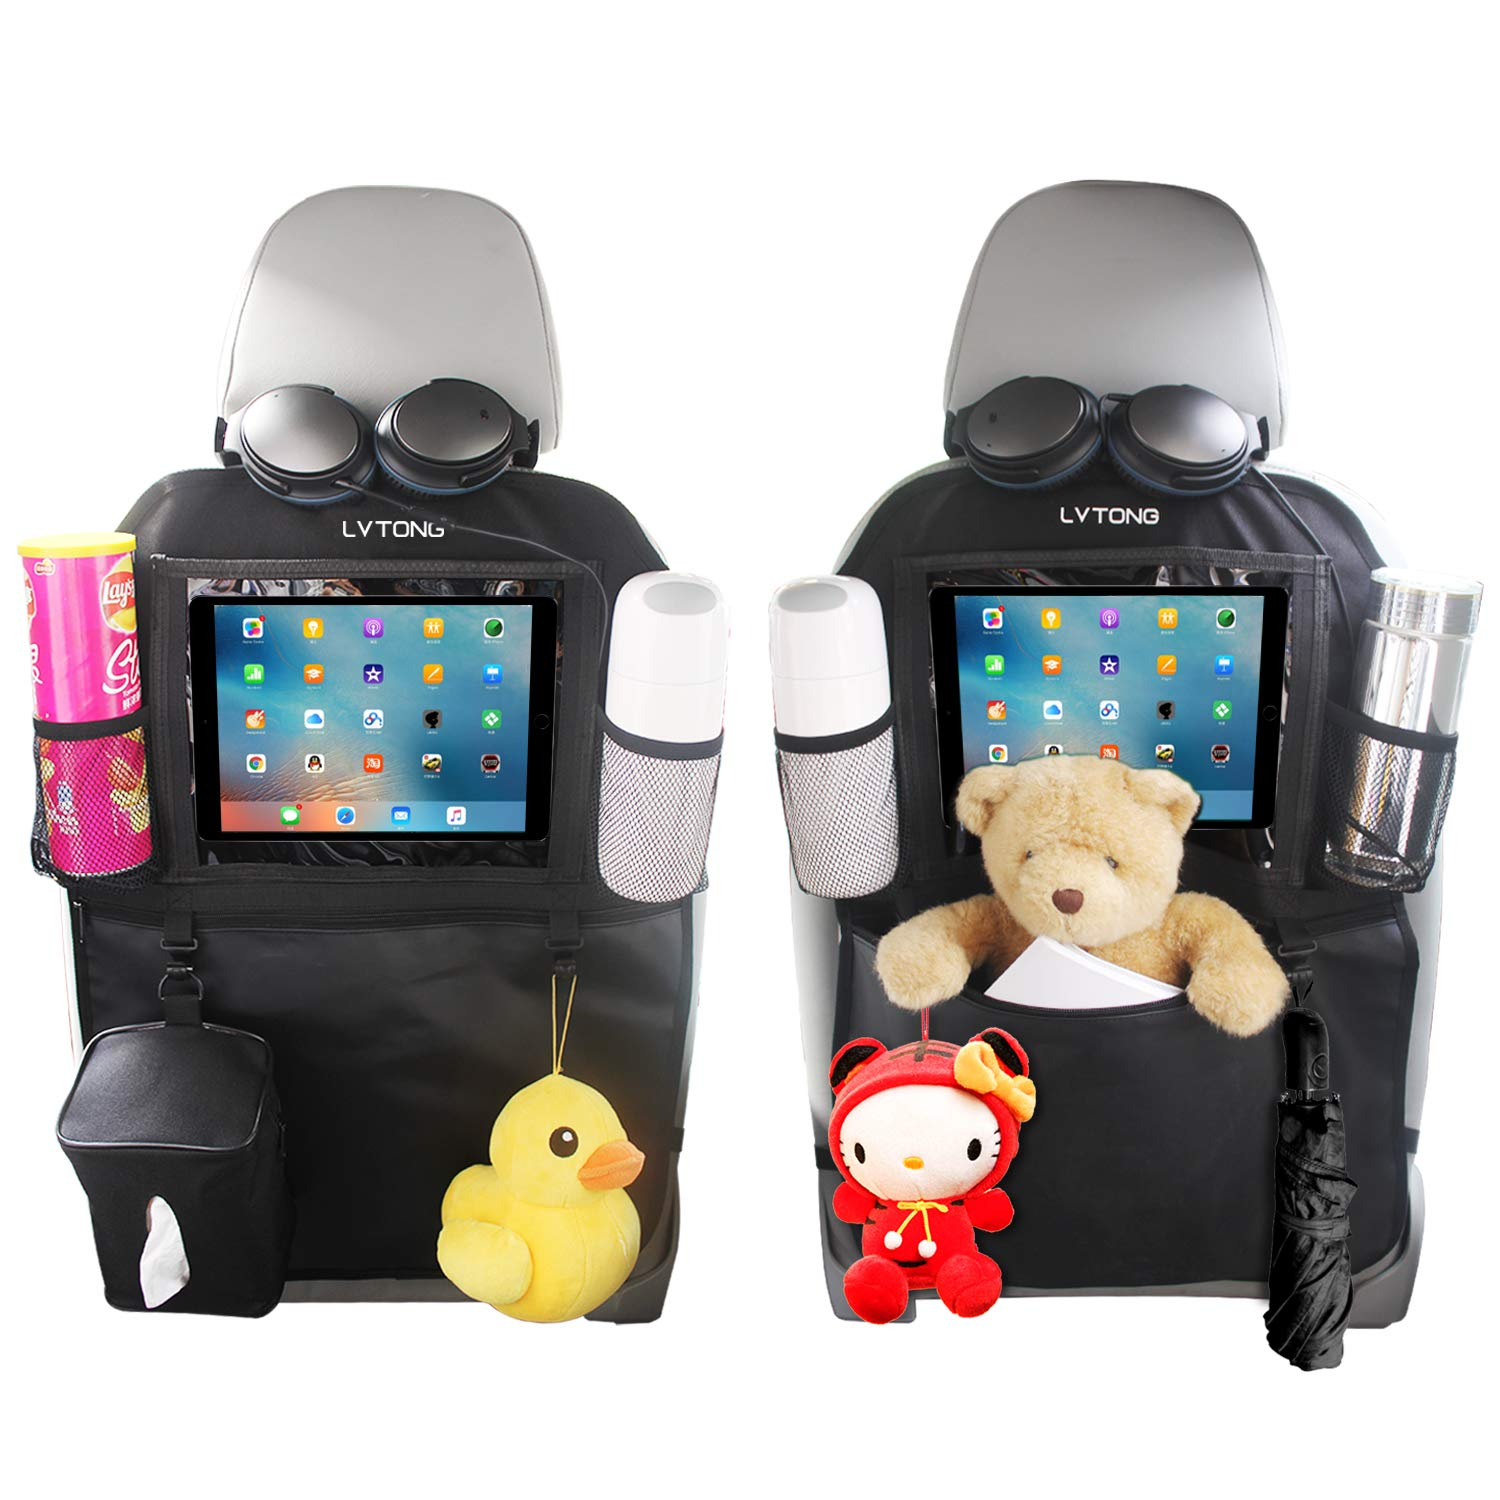 Kick Mats Car Back Seat Organizer 2 Pack Protector Covers XL Storage Bag Pocket with 1 Free Tissue Box 10'' iPad Tablet Holder Car Organizers for Kids Travel